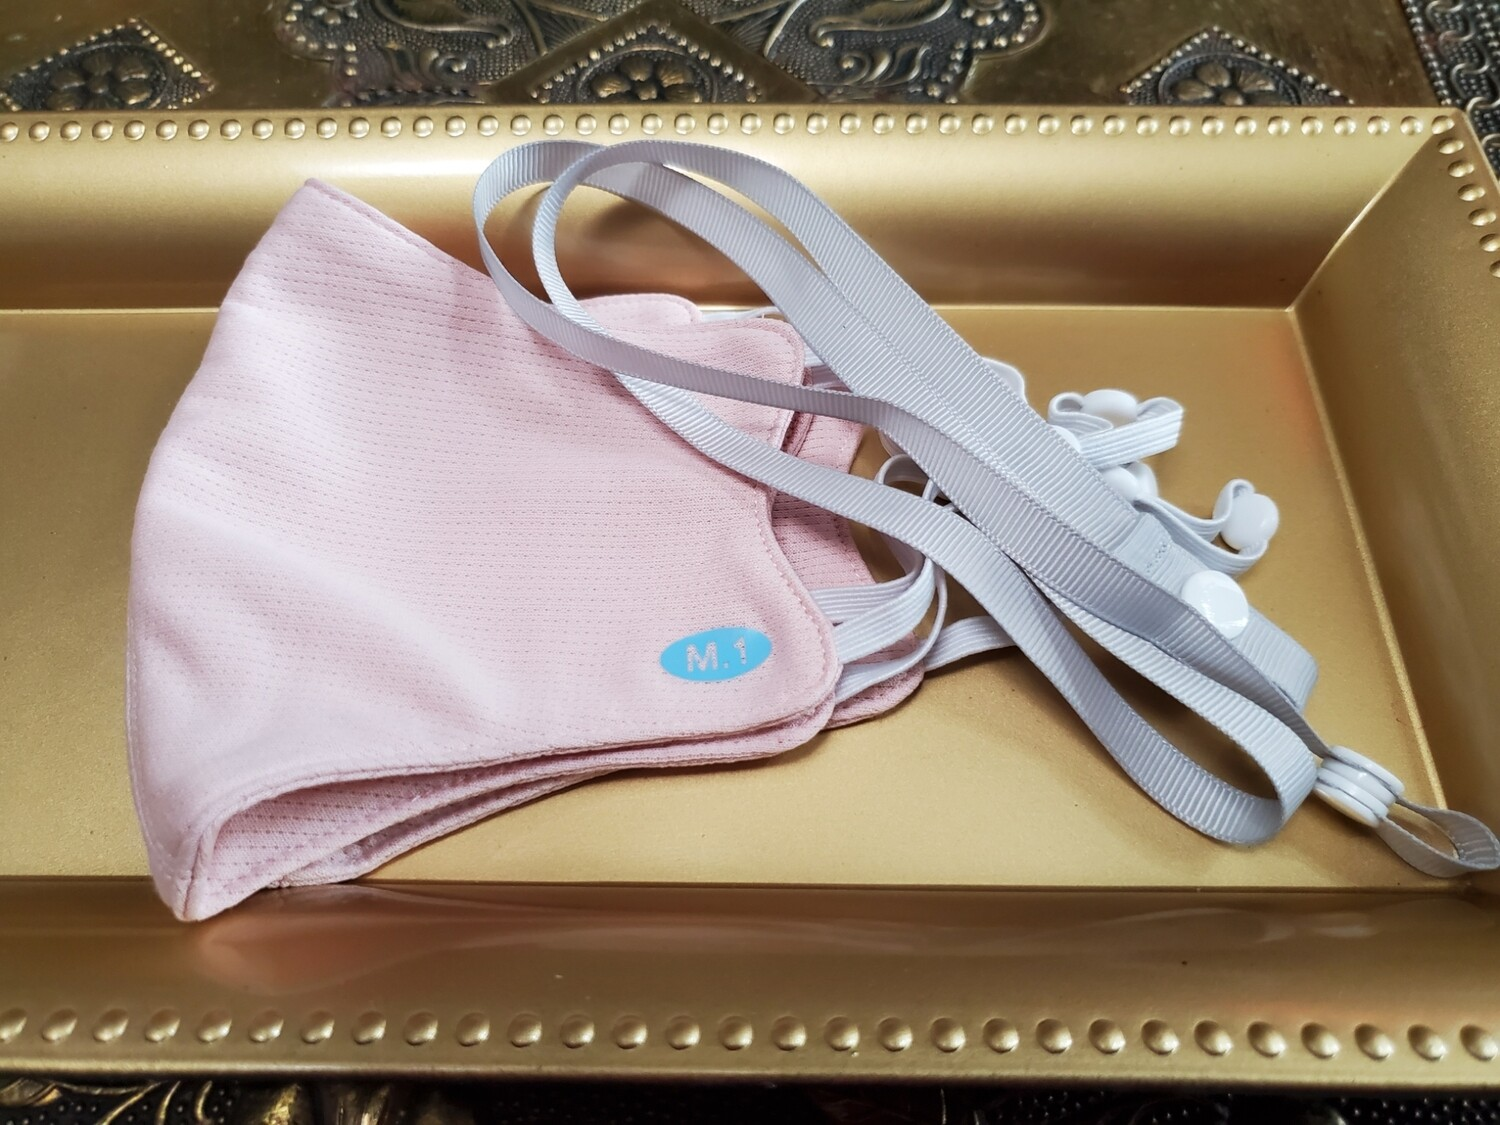 Peachy 💗🍑Pink / Grey 🍑💗 3 pieces set  - 2 Adjustable Ear loops Hygienic Nano Fiber Double Antimicrobial Layers Liquid  Repellent Fabric Face Mask +1 Grey Mask strap - 💥😷🗽